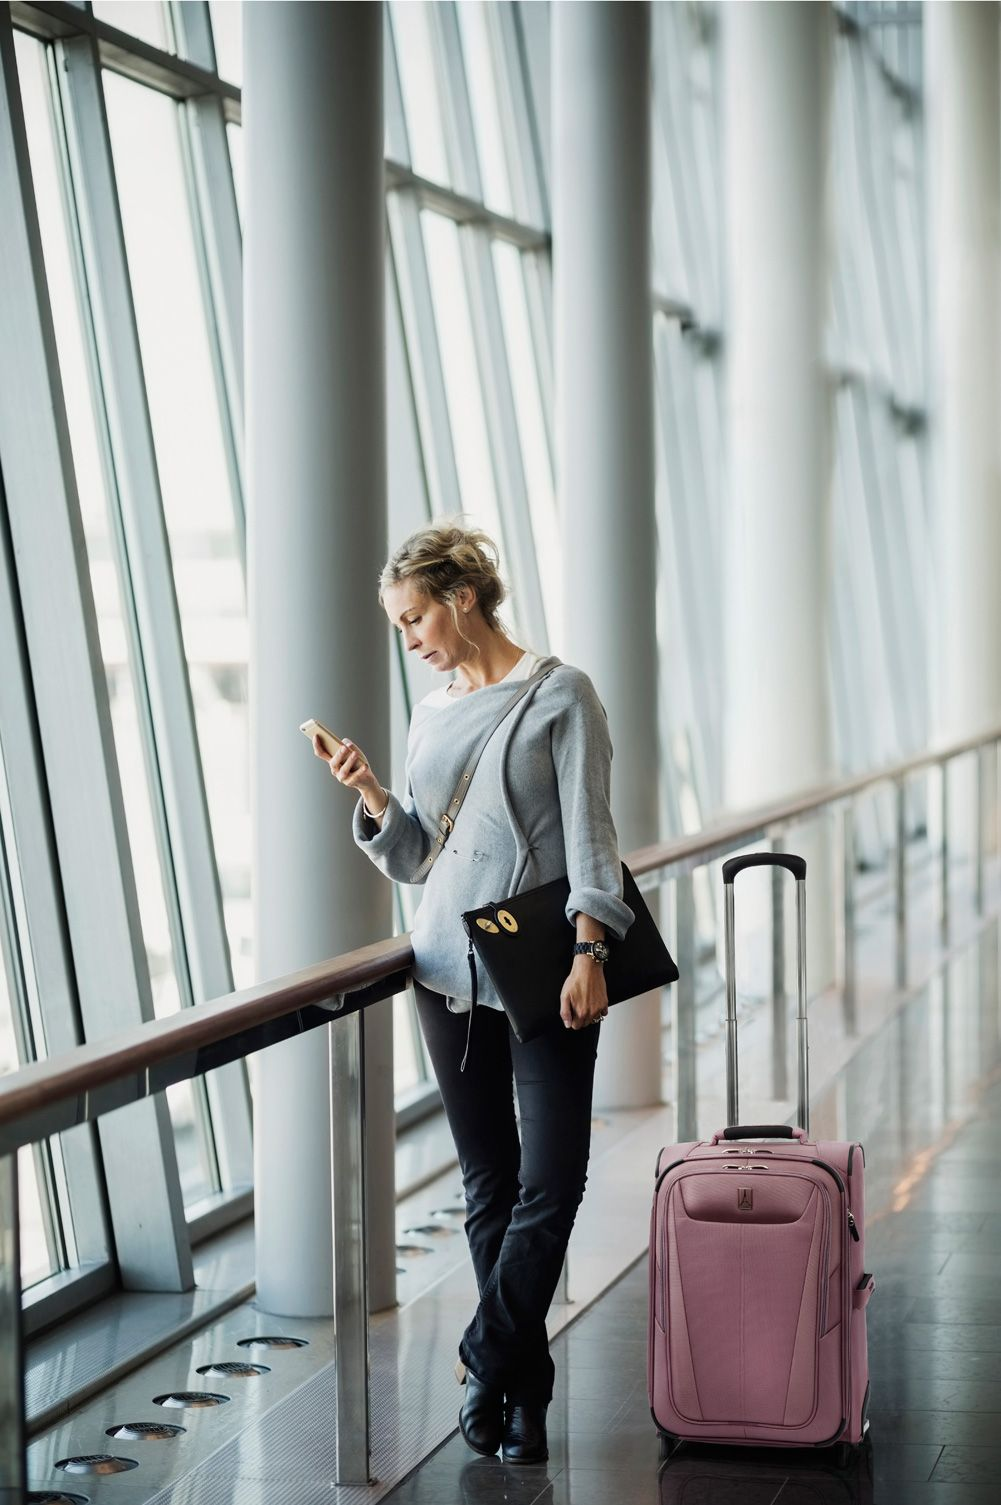 31b7074f6 Beautiful Dusty Rose Colored Luggage - Travelpro® brings superior  craftsmanship to the Marquis Maxlite 5 Rollerboard® 22 inch Carry-On  Suitcase.